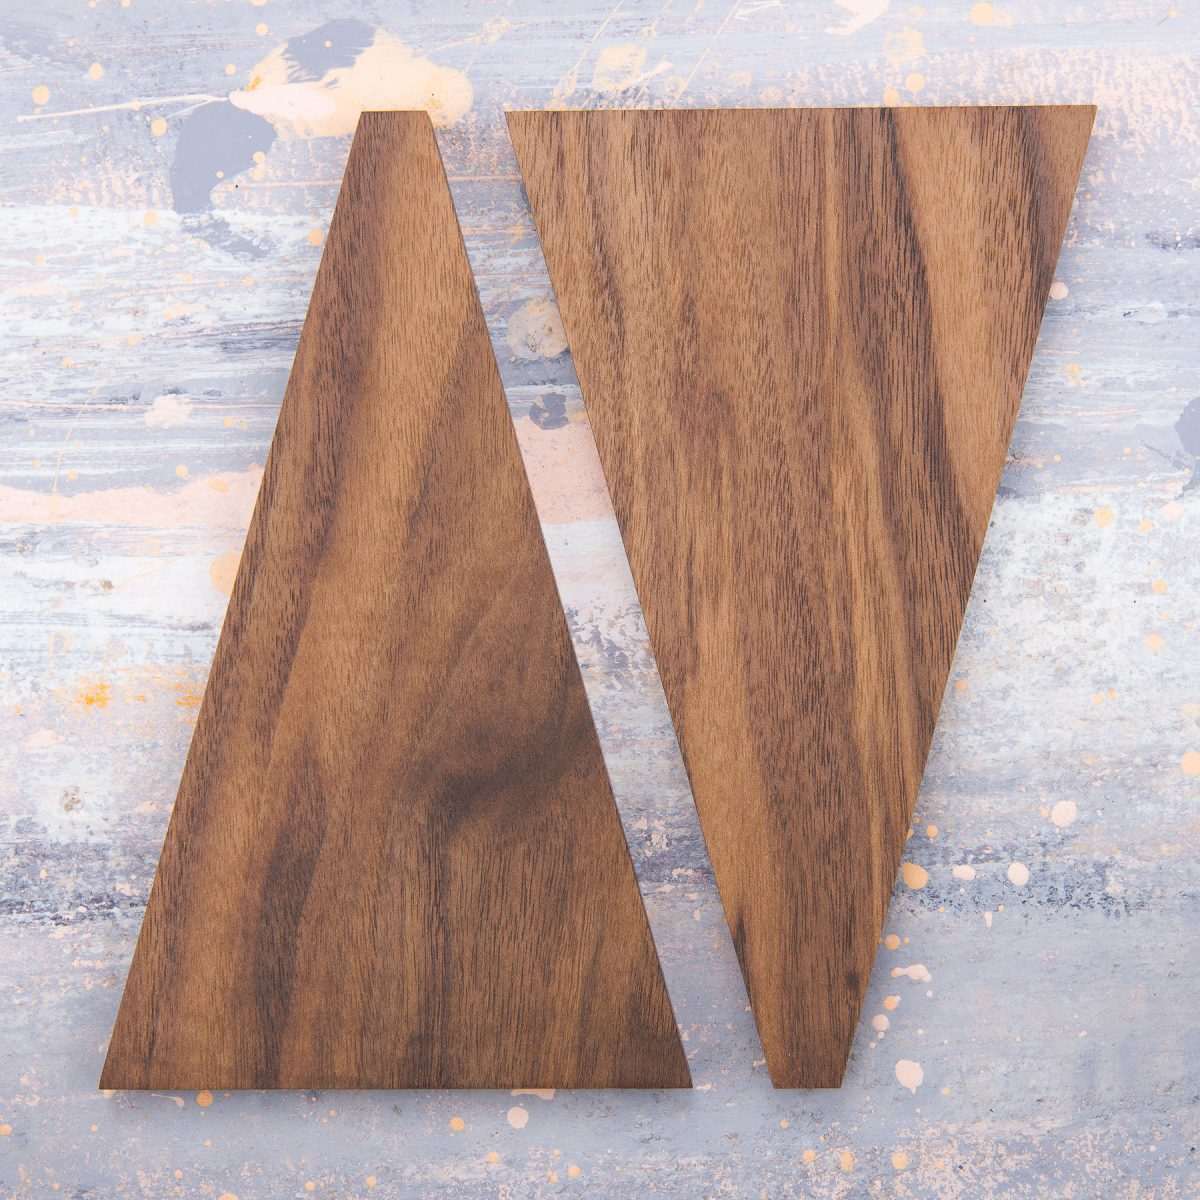 Jan Hendzel Studio samples american black walnut